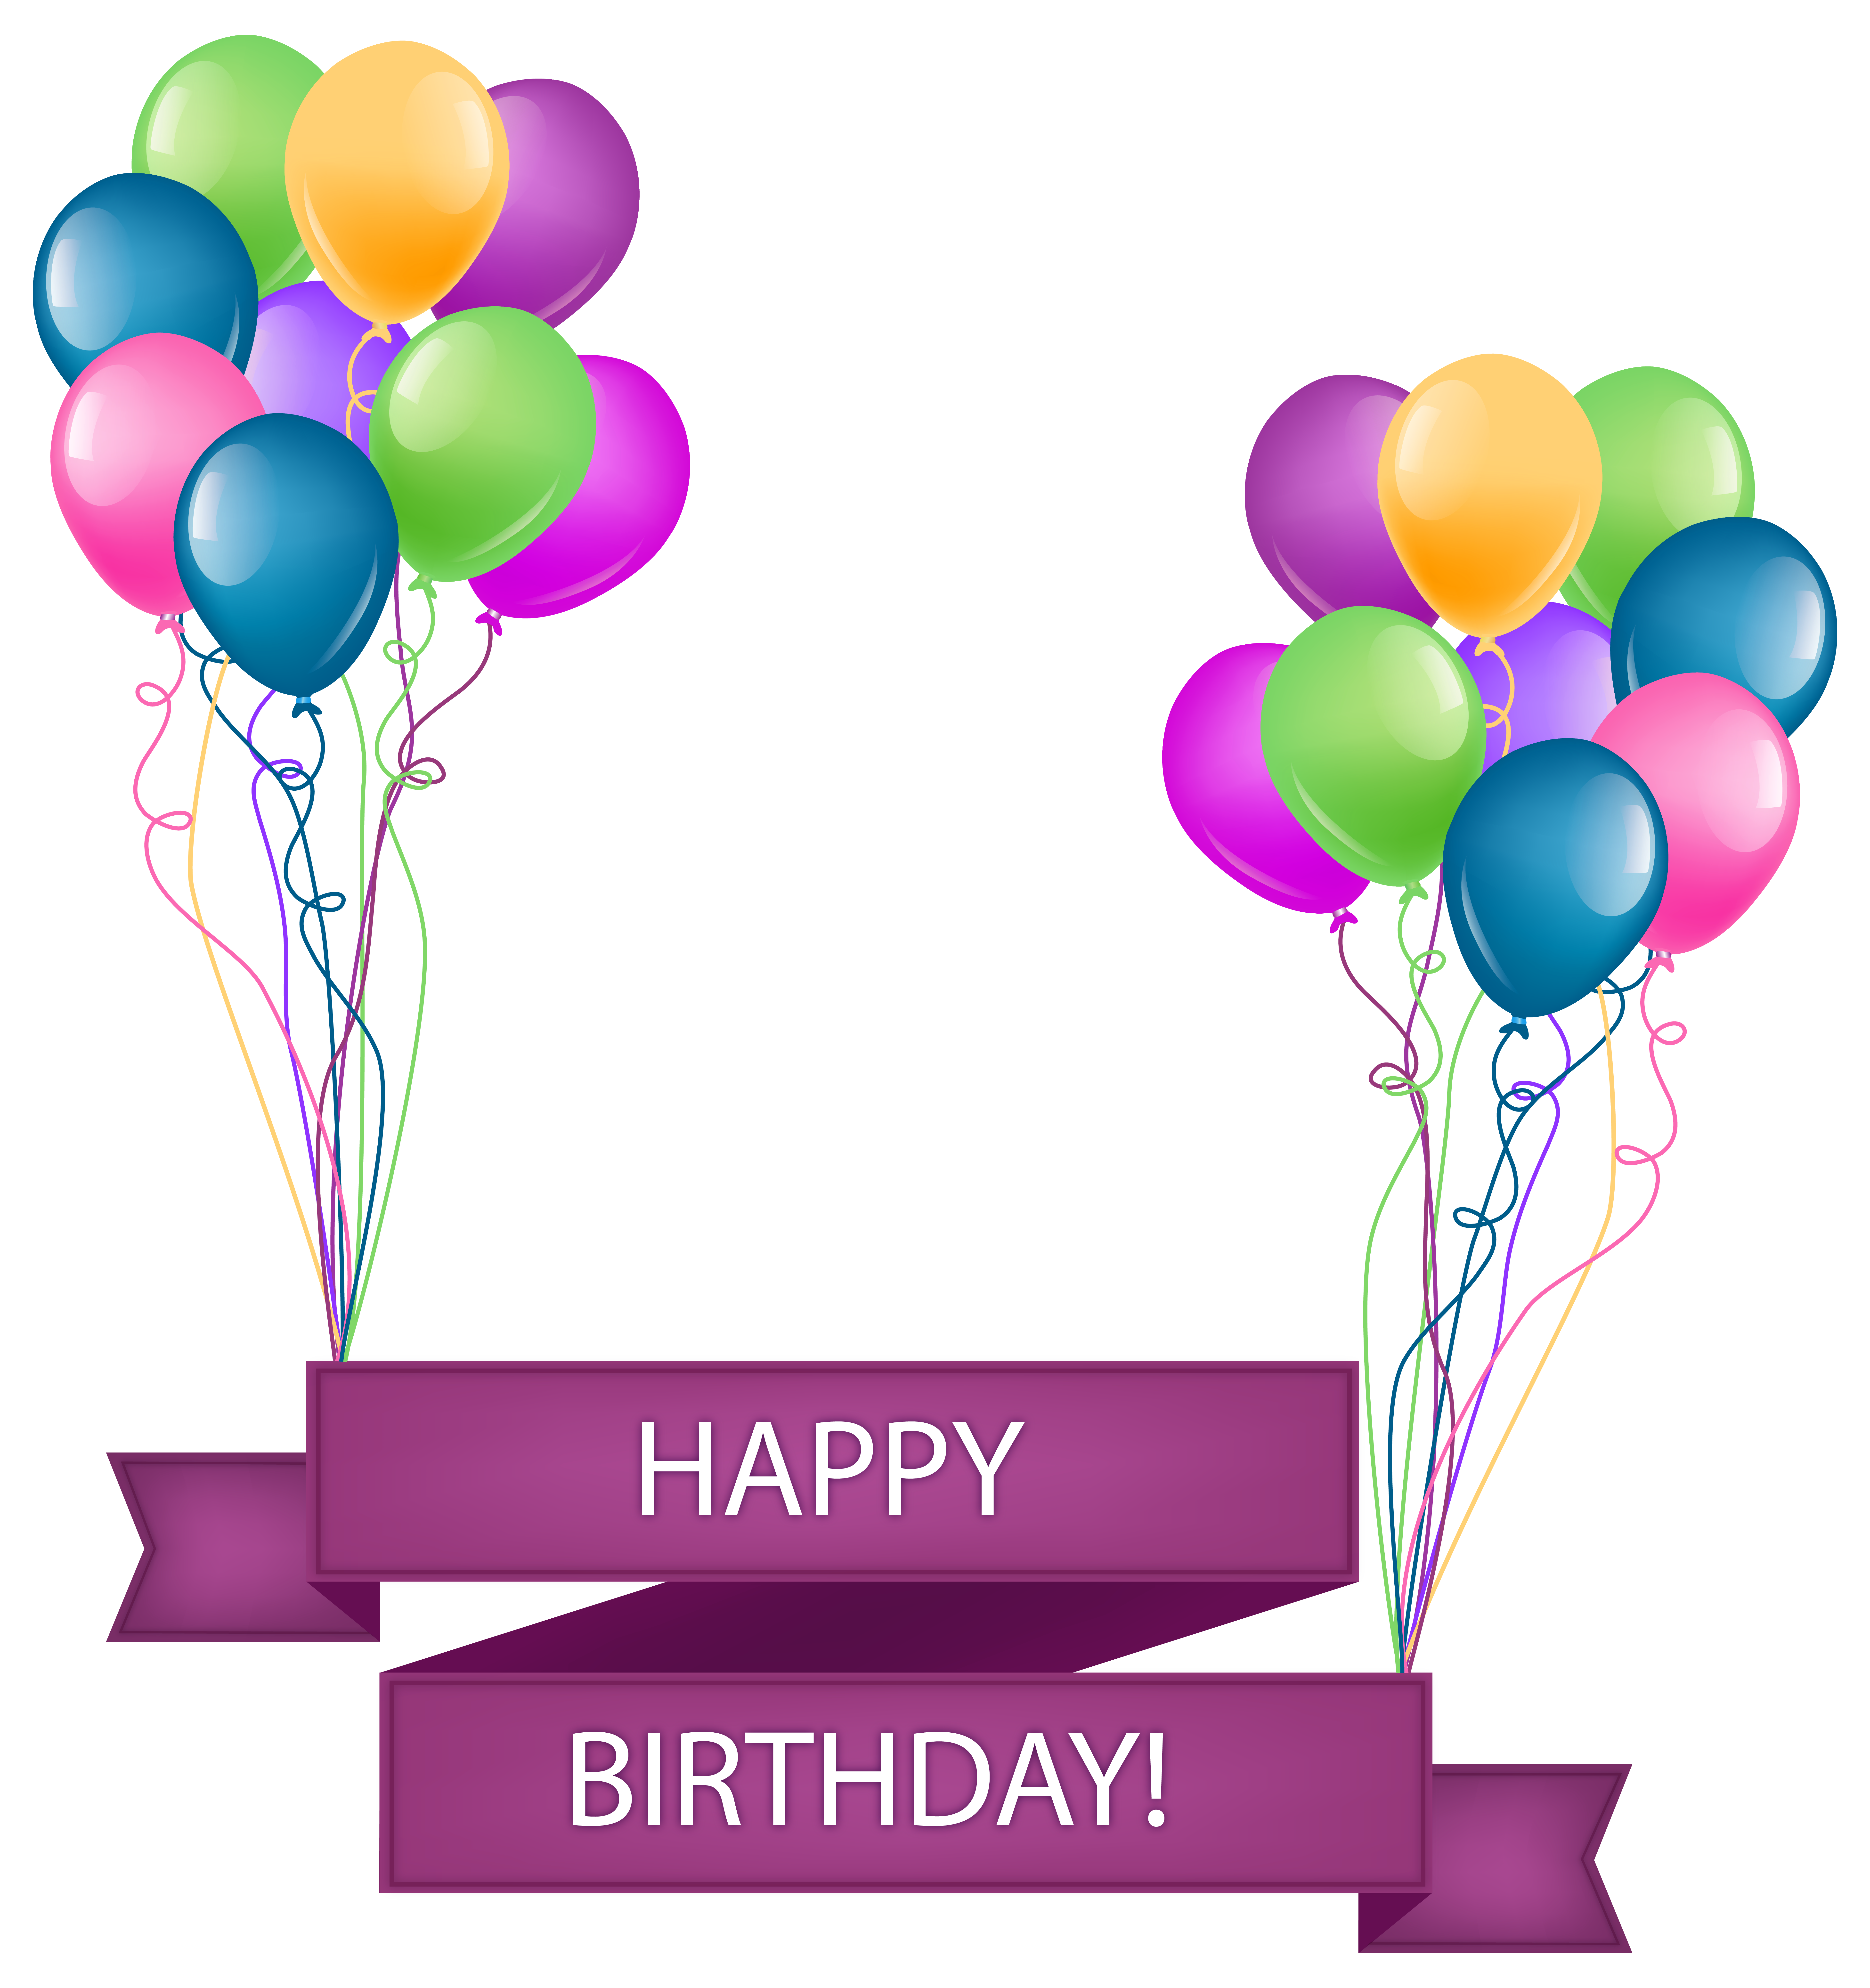 7710x8197 Happy Birthday Banner With Balloons Transparent Png Clip Art Image